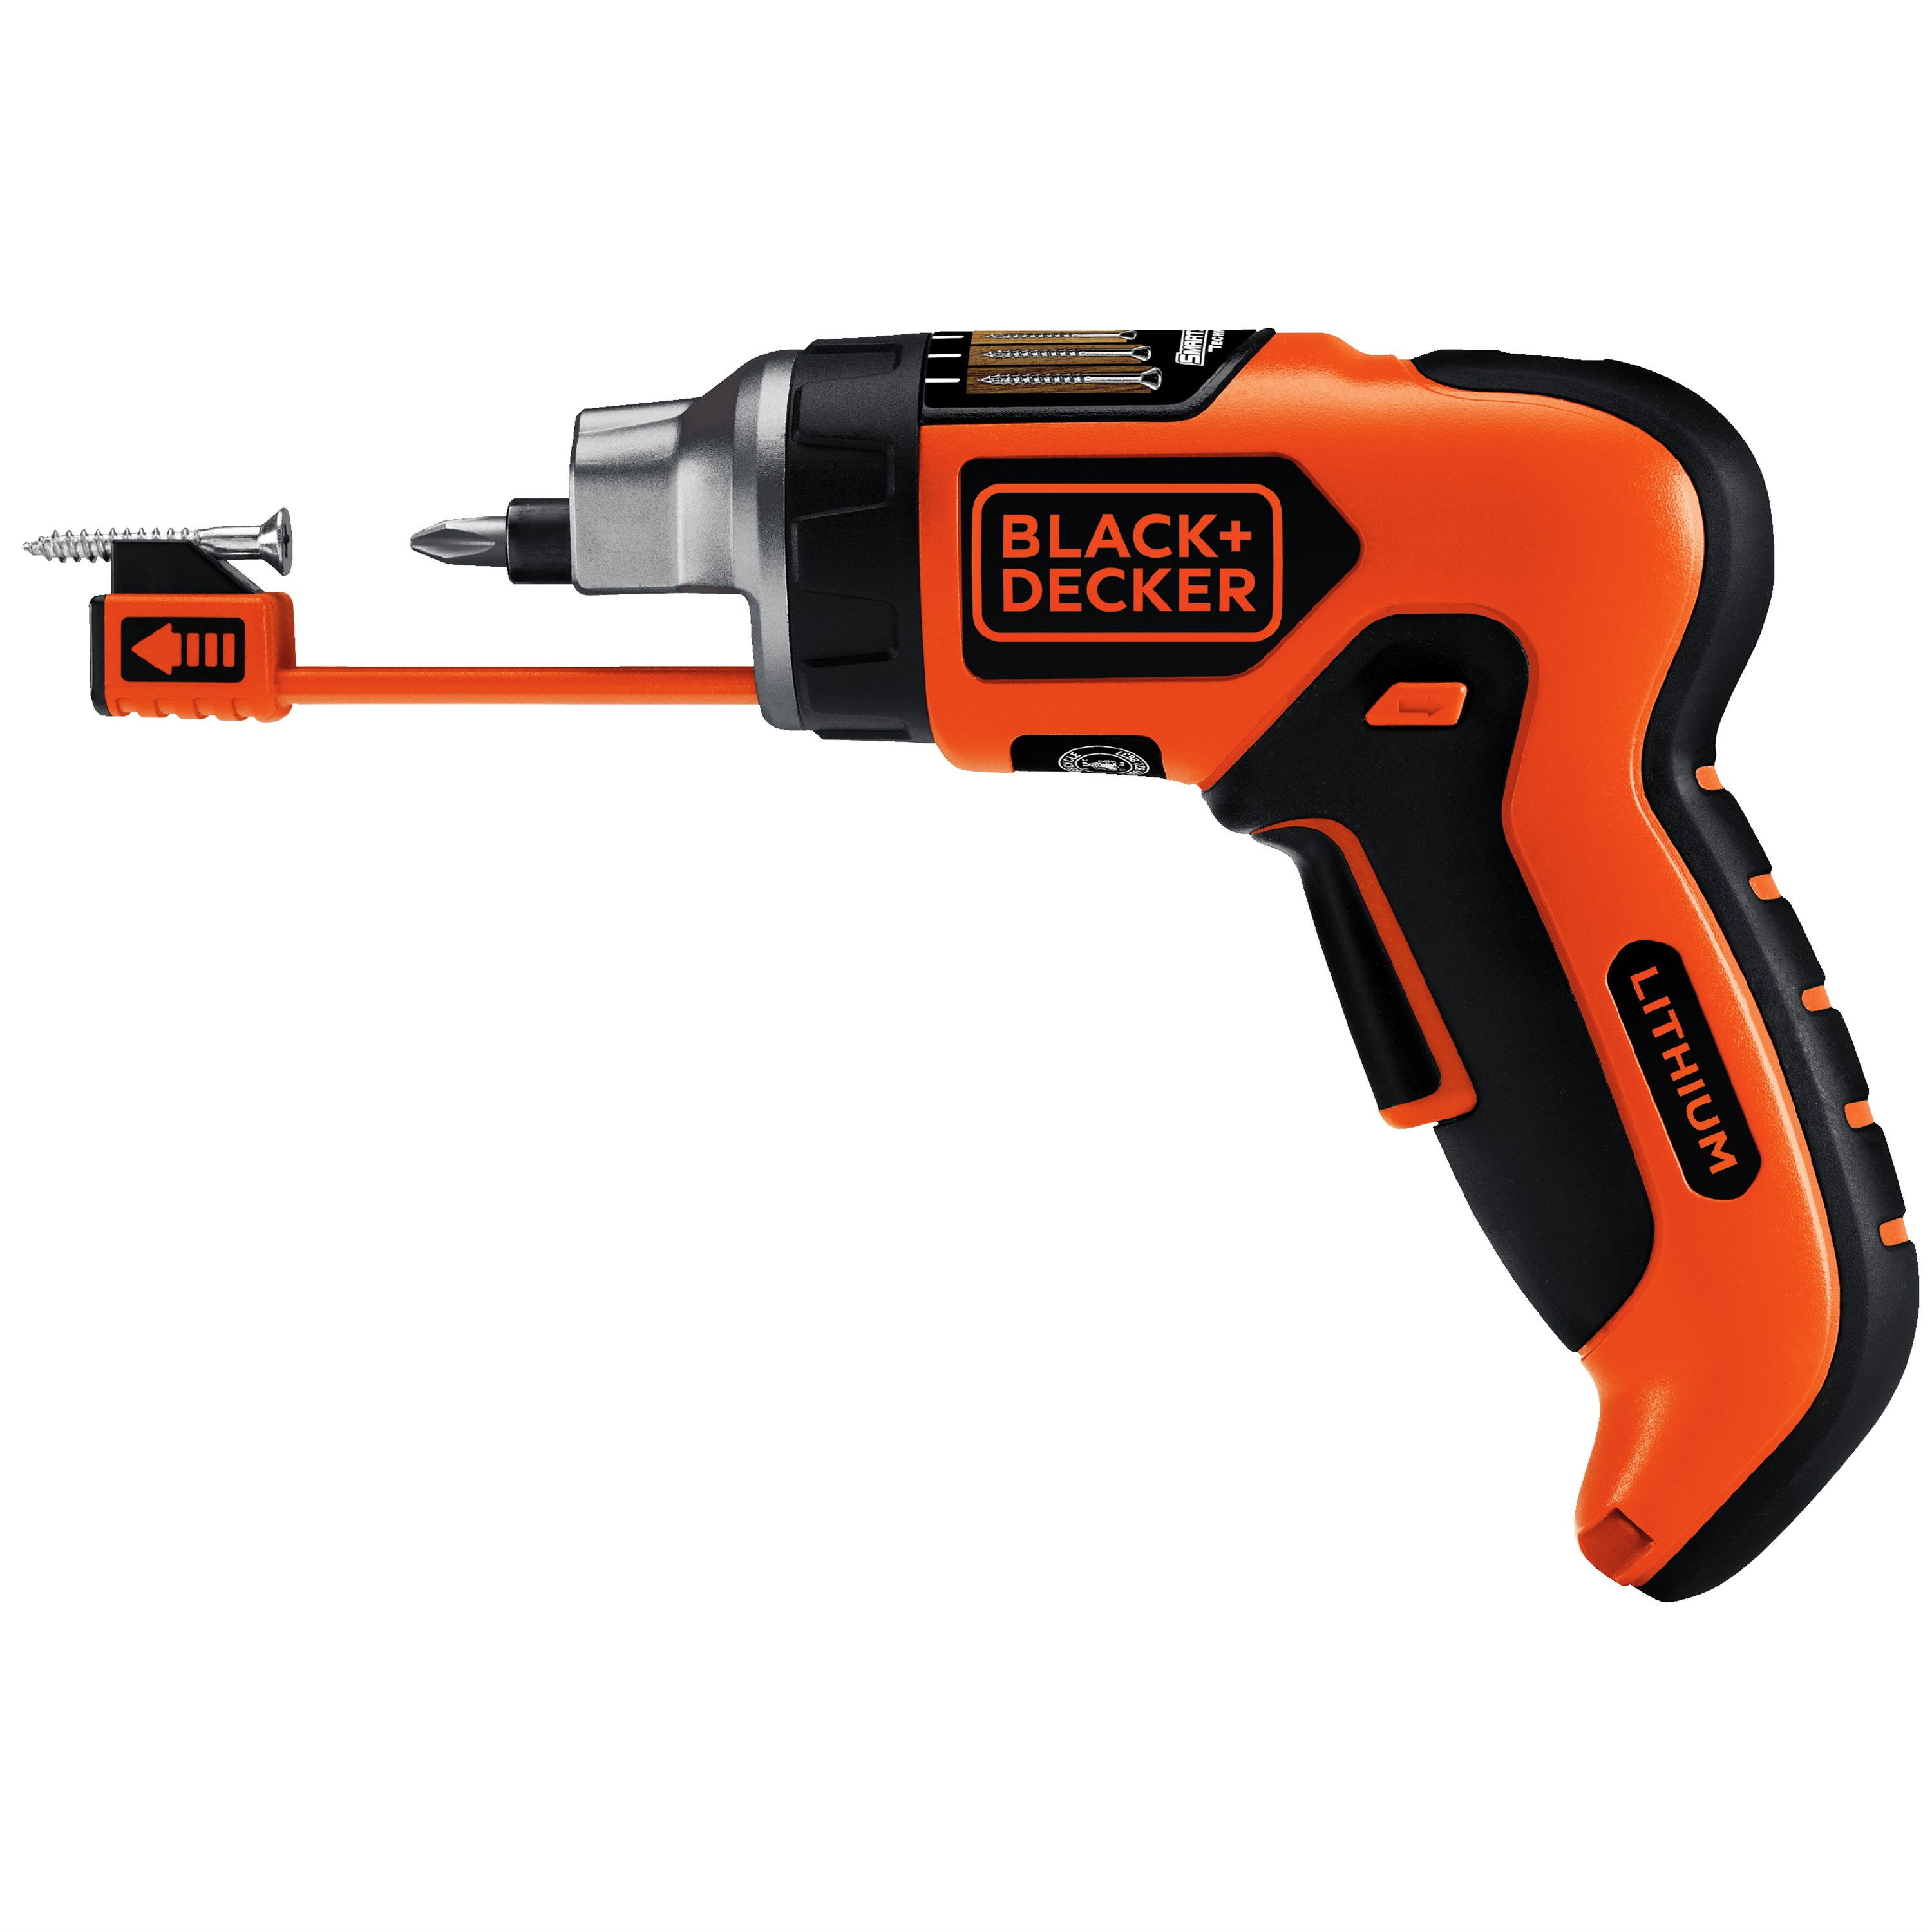 BLACK+DECKERâ ¢ LI4000 4V MAX* Lithium SmartDriverâ ¢ Cordless Screwdriver